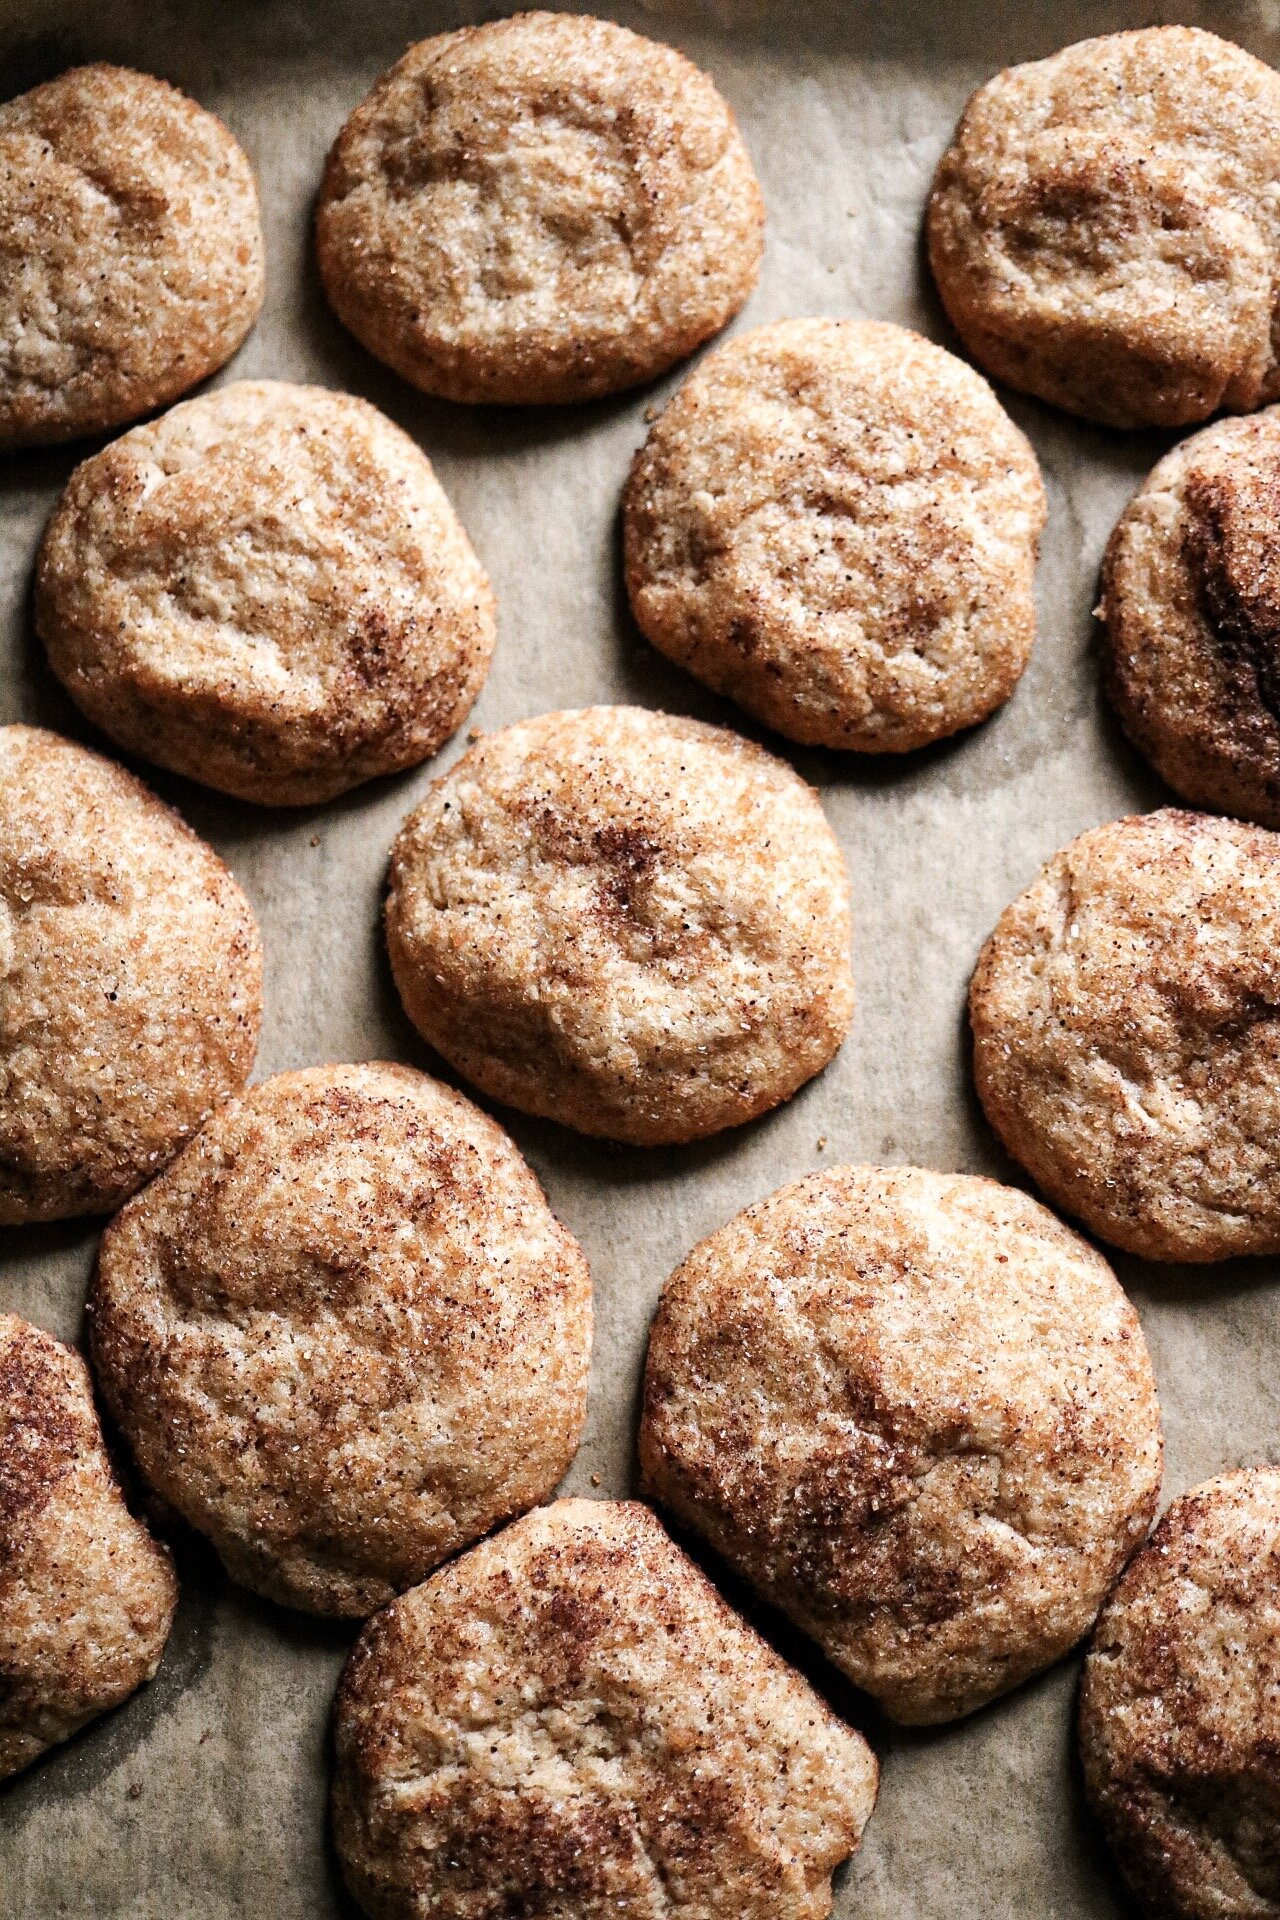 The  key  to amazing snickerdoodles is to roll them in cinnamon sugar - it's just science y'all.